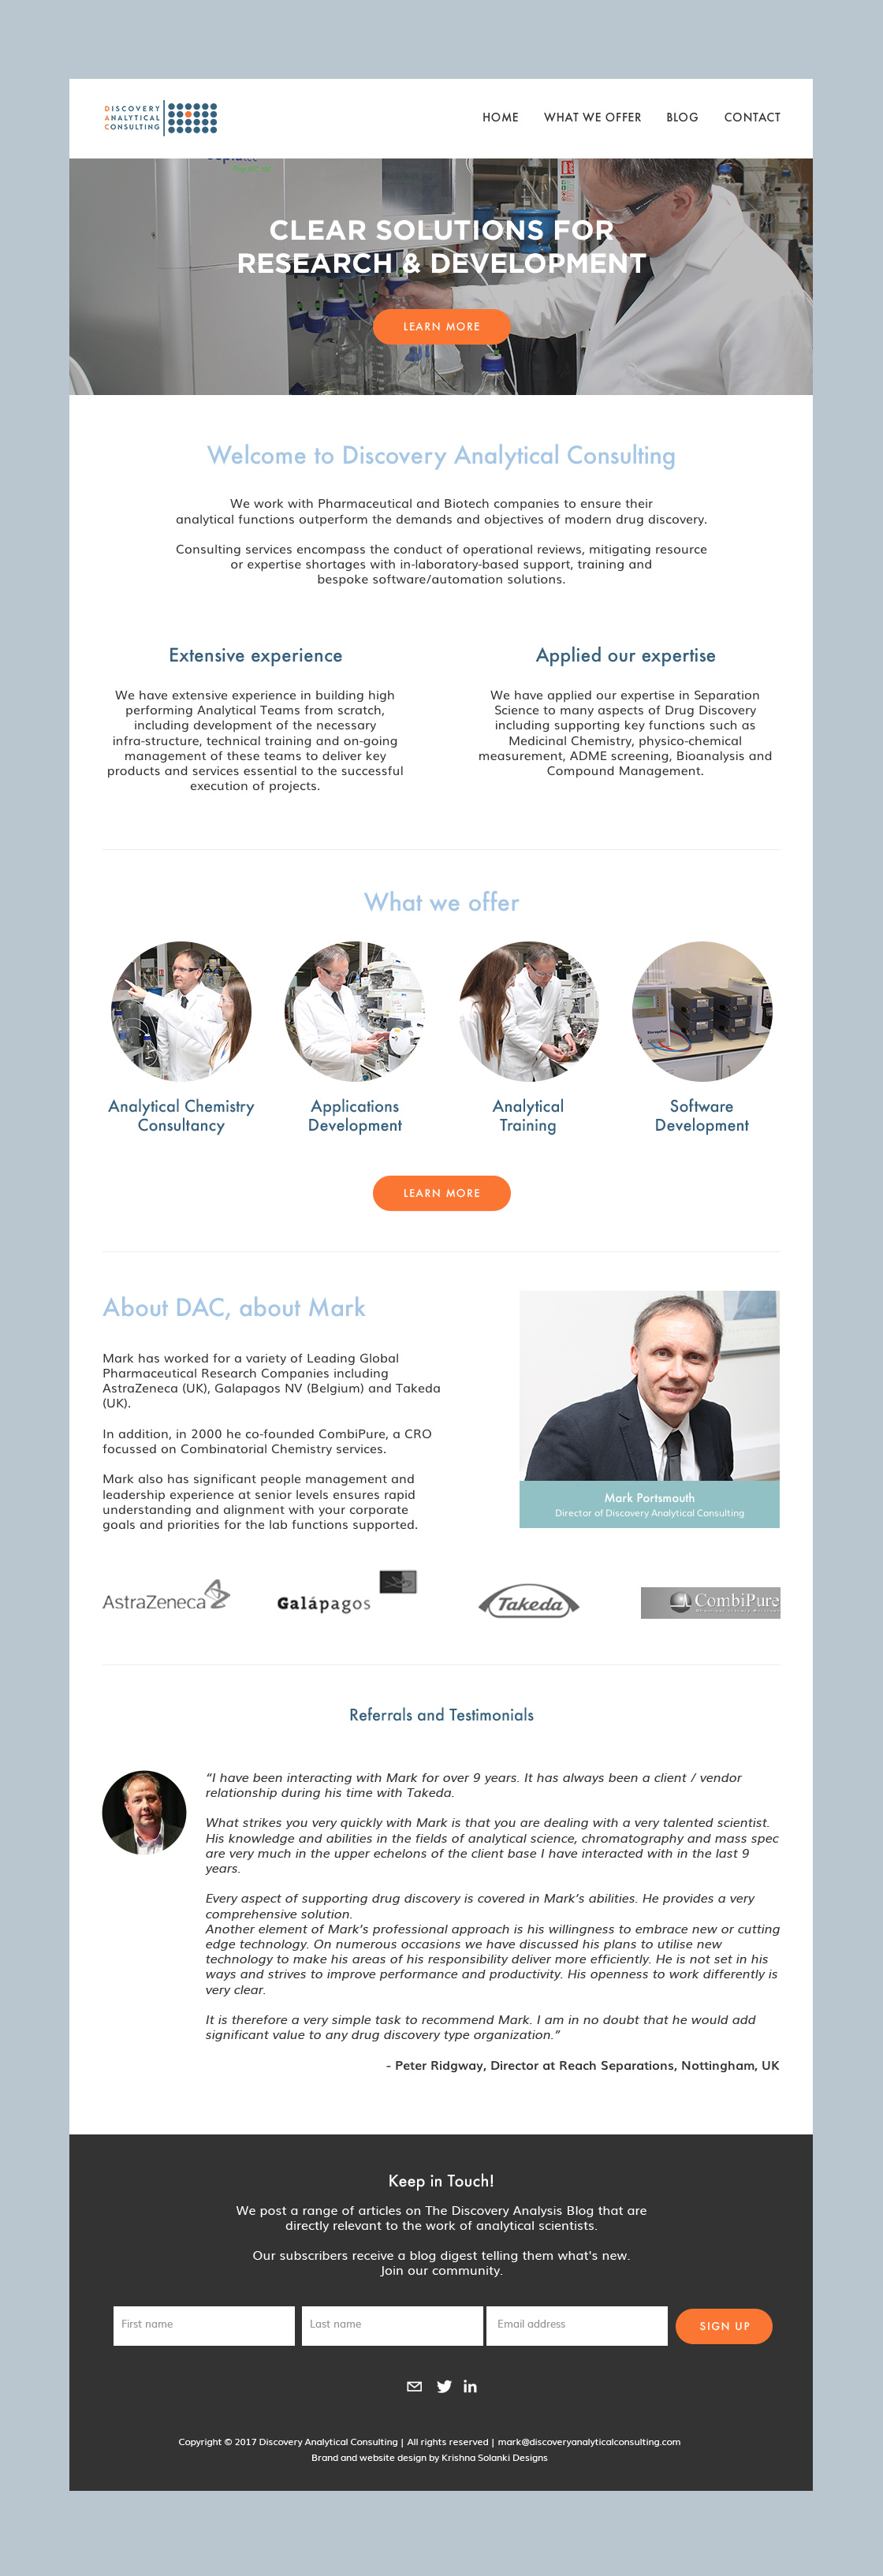 Krishna Solanki Designs  - Discovery Analytical Consulting Ltd - Squarespace Website Design - Homepage